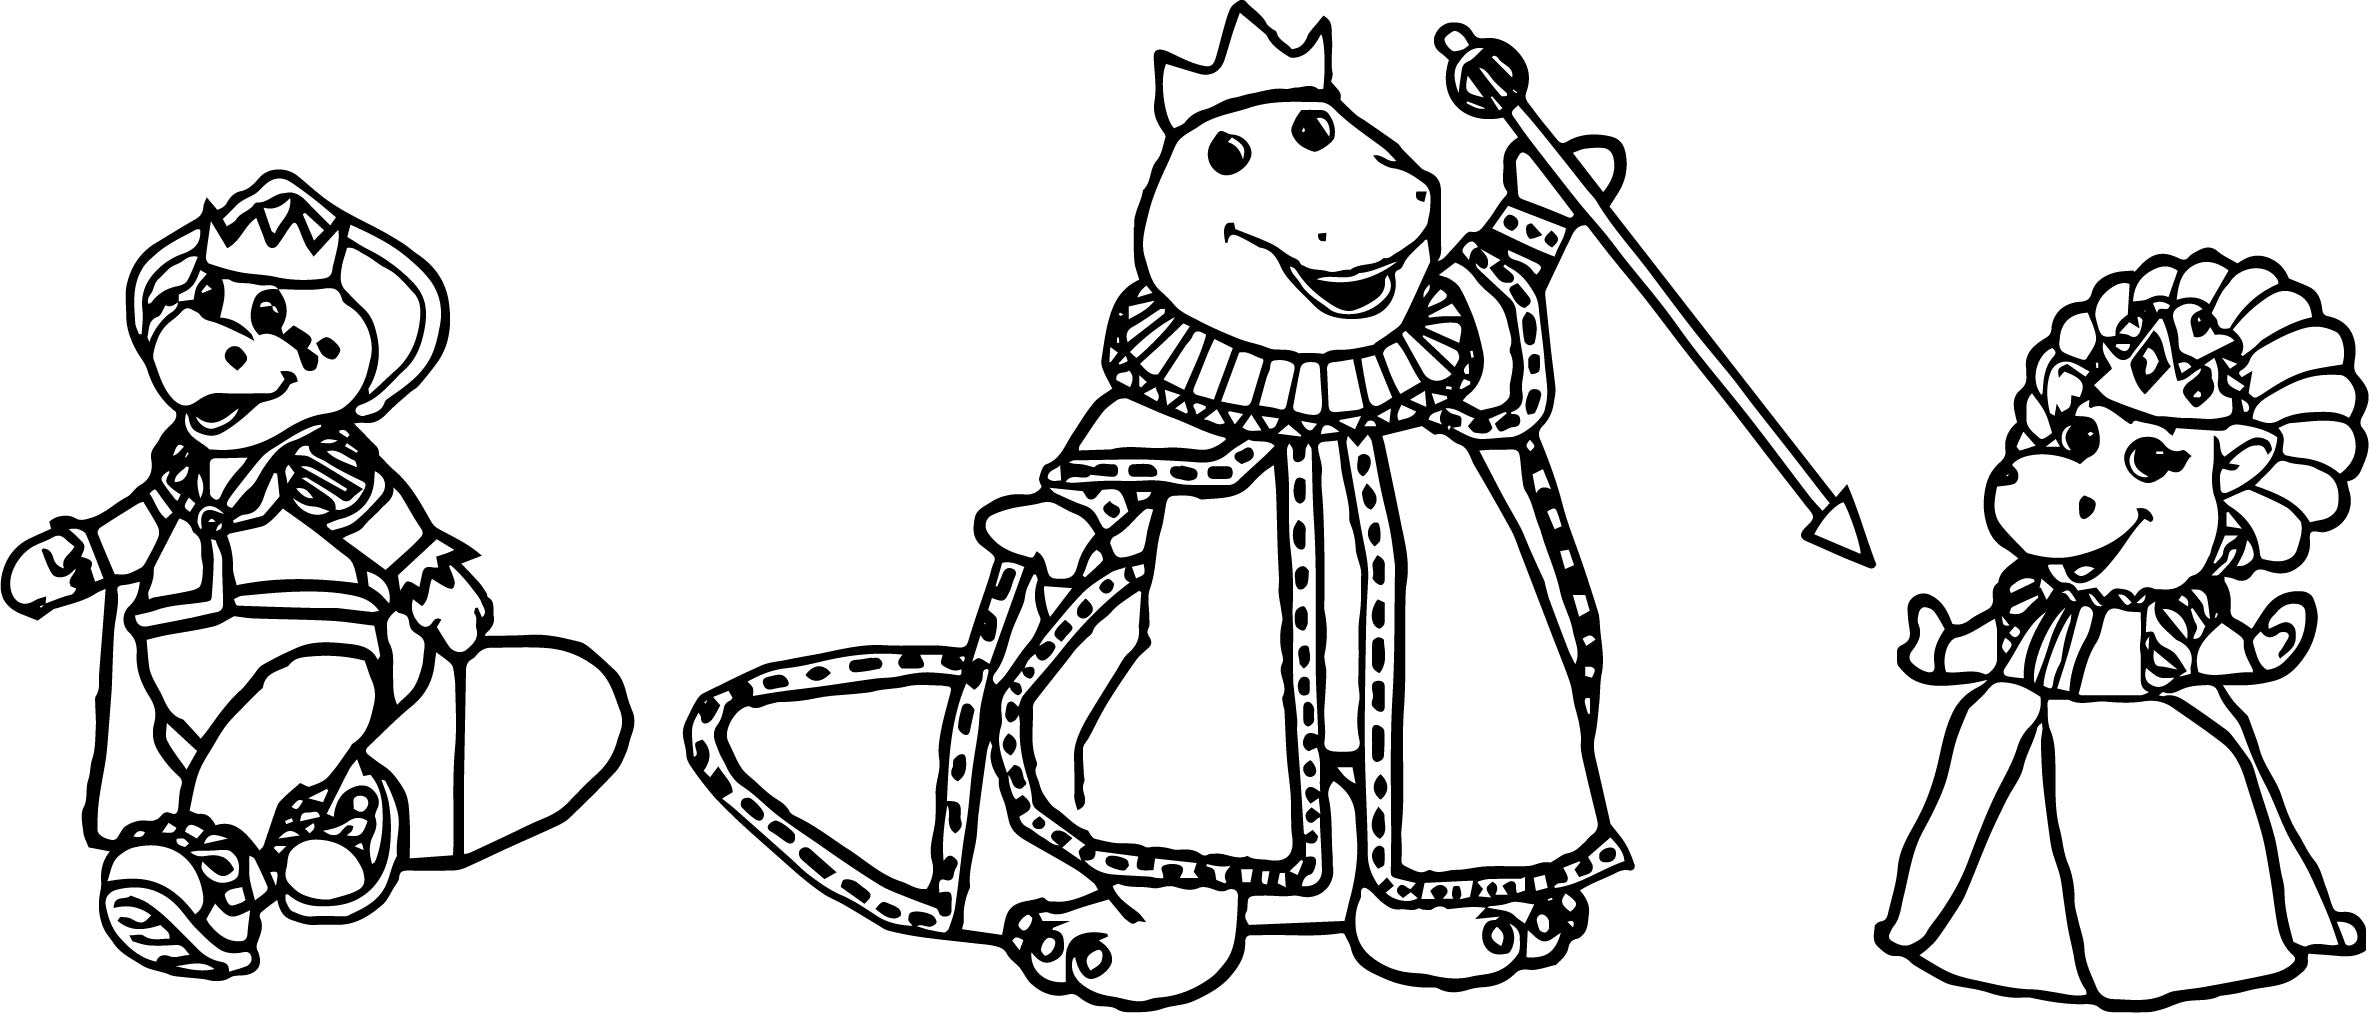 Barney Bj Baby Bop Royalty Coloring Page  Wecoloringpage